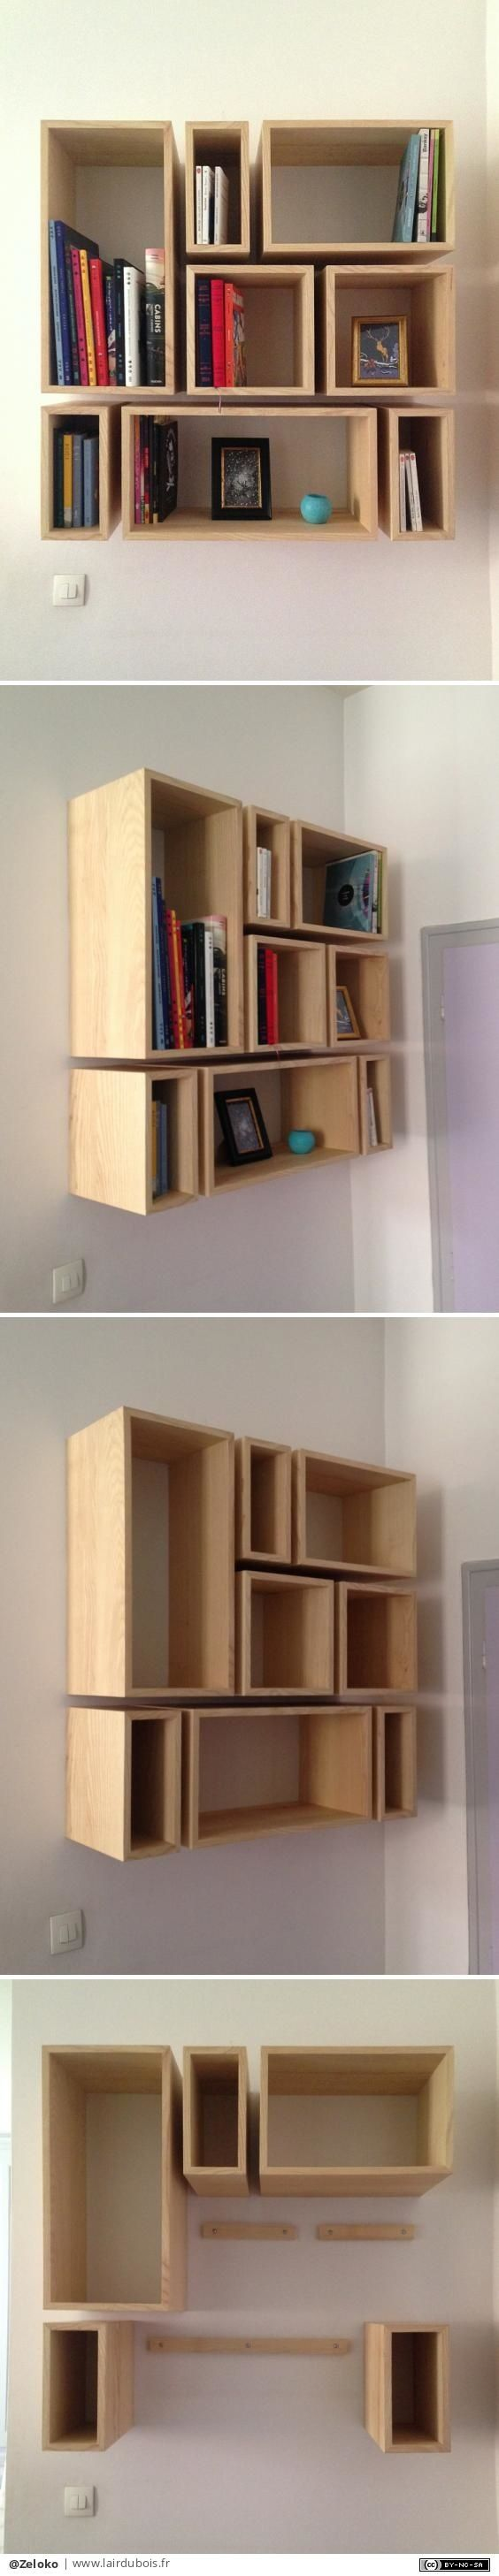 les 25 meilleures id es de la cat gorie bibliotheque metal sur pinterest biblioth que en m tal. Black Bedroom Furniture Sets. Home Design Ideas